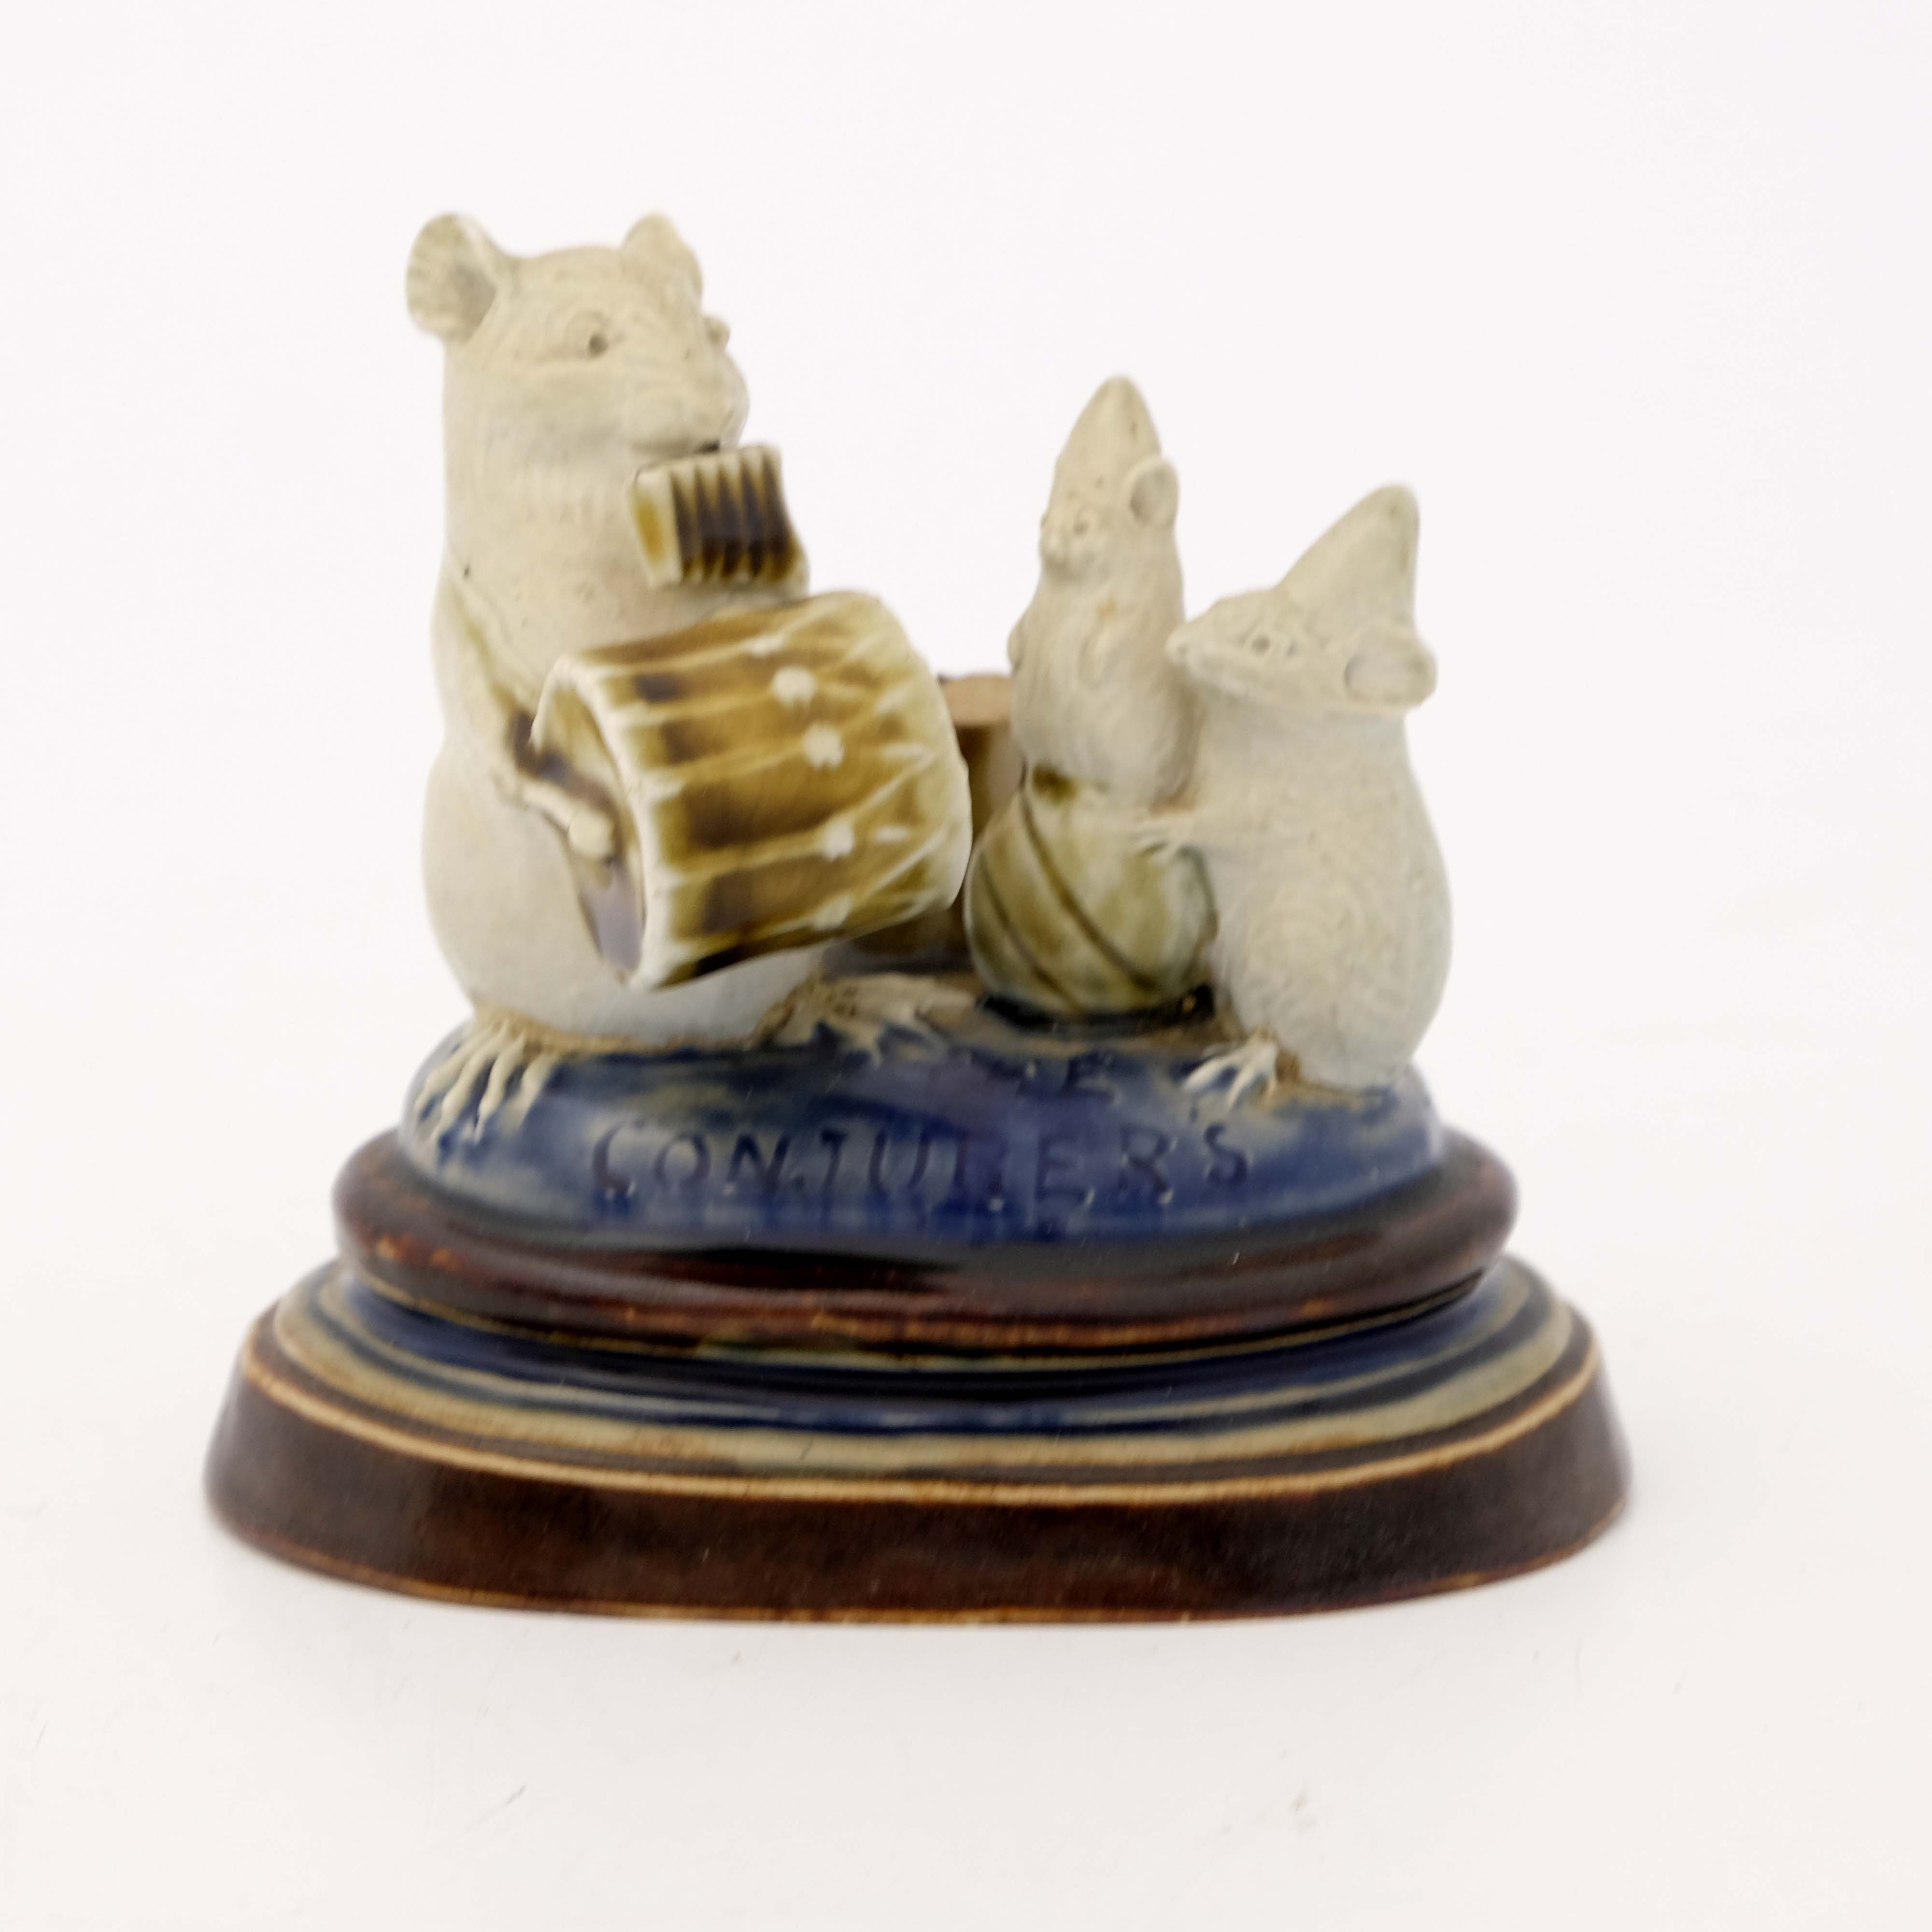 George Tinworth for Doulton Lambeth, a mouse figur - Image 2 of 4